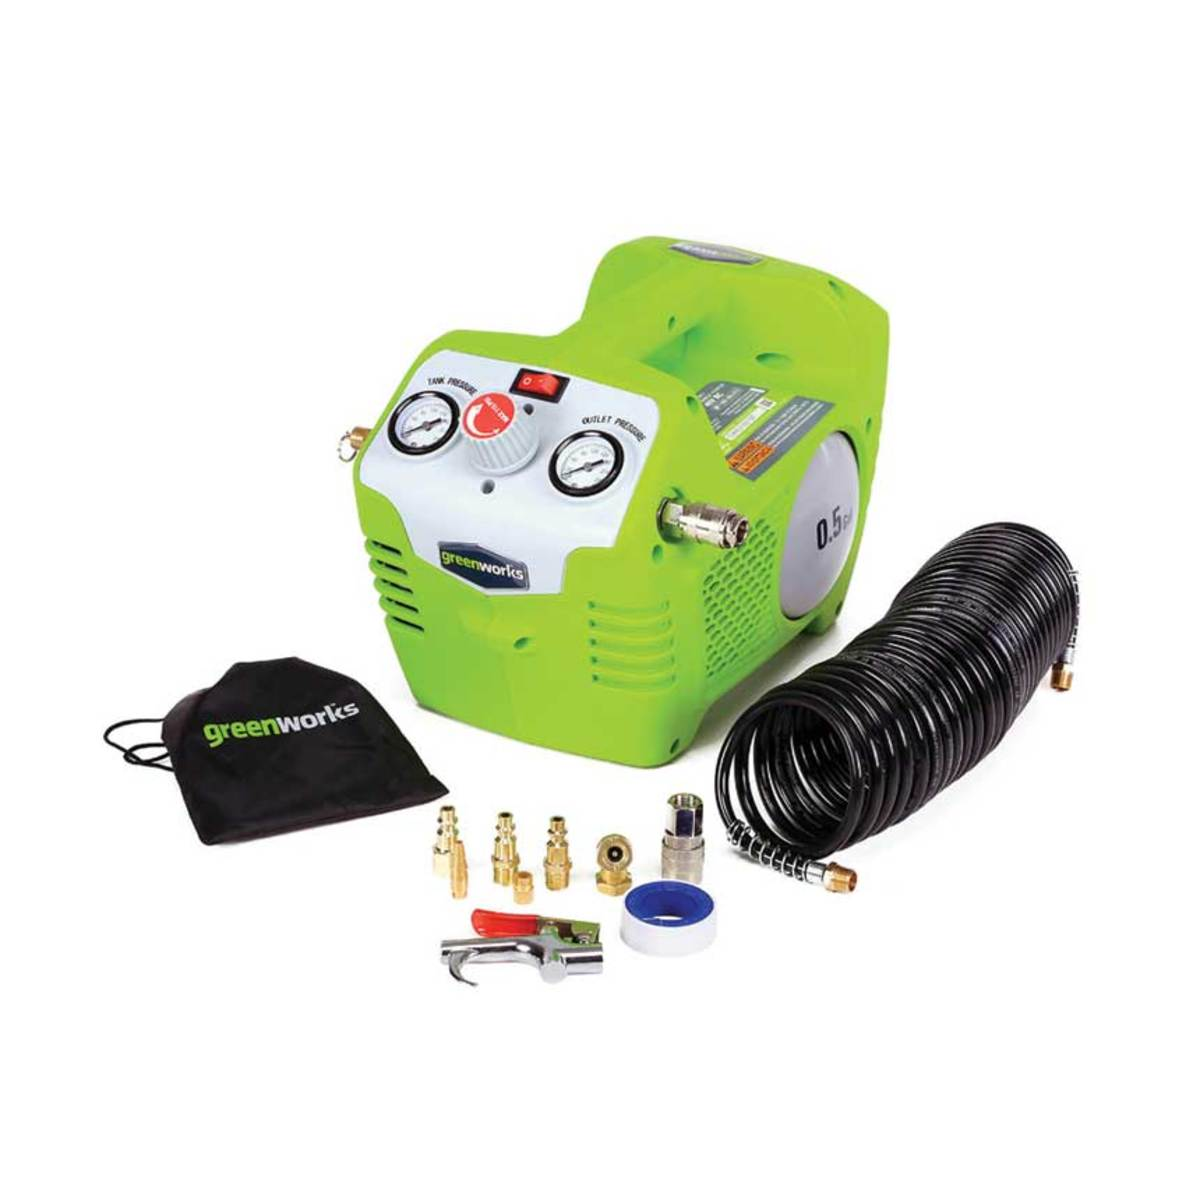 Greenworks (greenworkstools.com) has a 40-volt compressor, model 4100102.